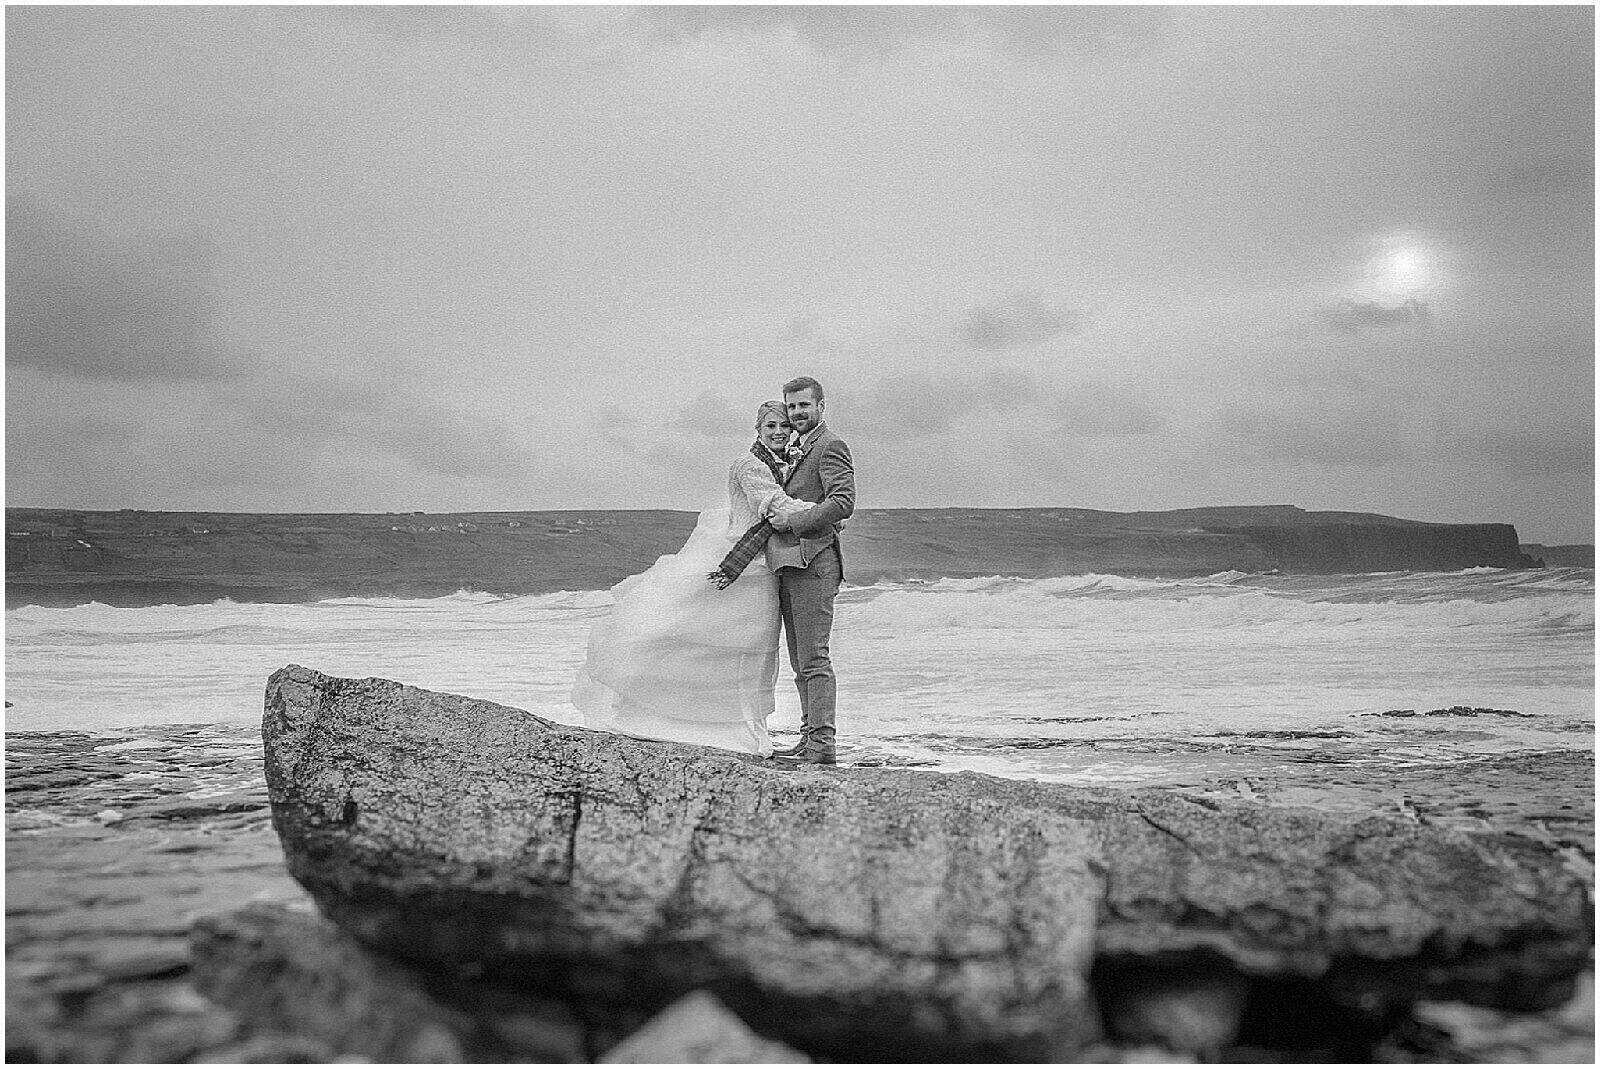 johnny corcoran lifestyle relaxed unposed documentary natural wedding portrait photography dublin ireland 3176 - Fun and Relaxed wedding and elopement photography in Ireland, perfect for adventurous and outdoorsy couples